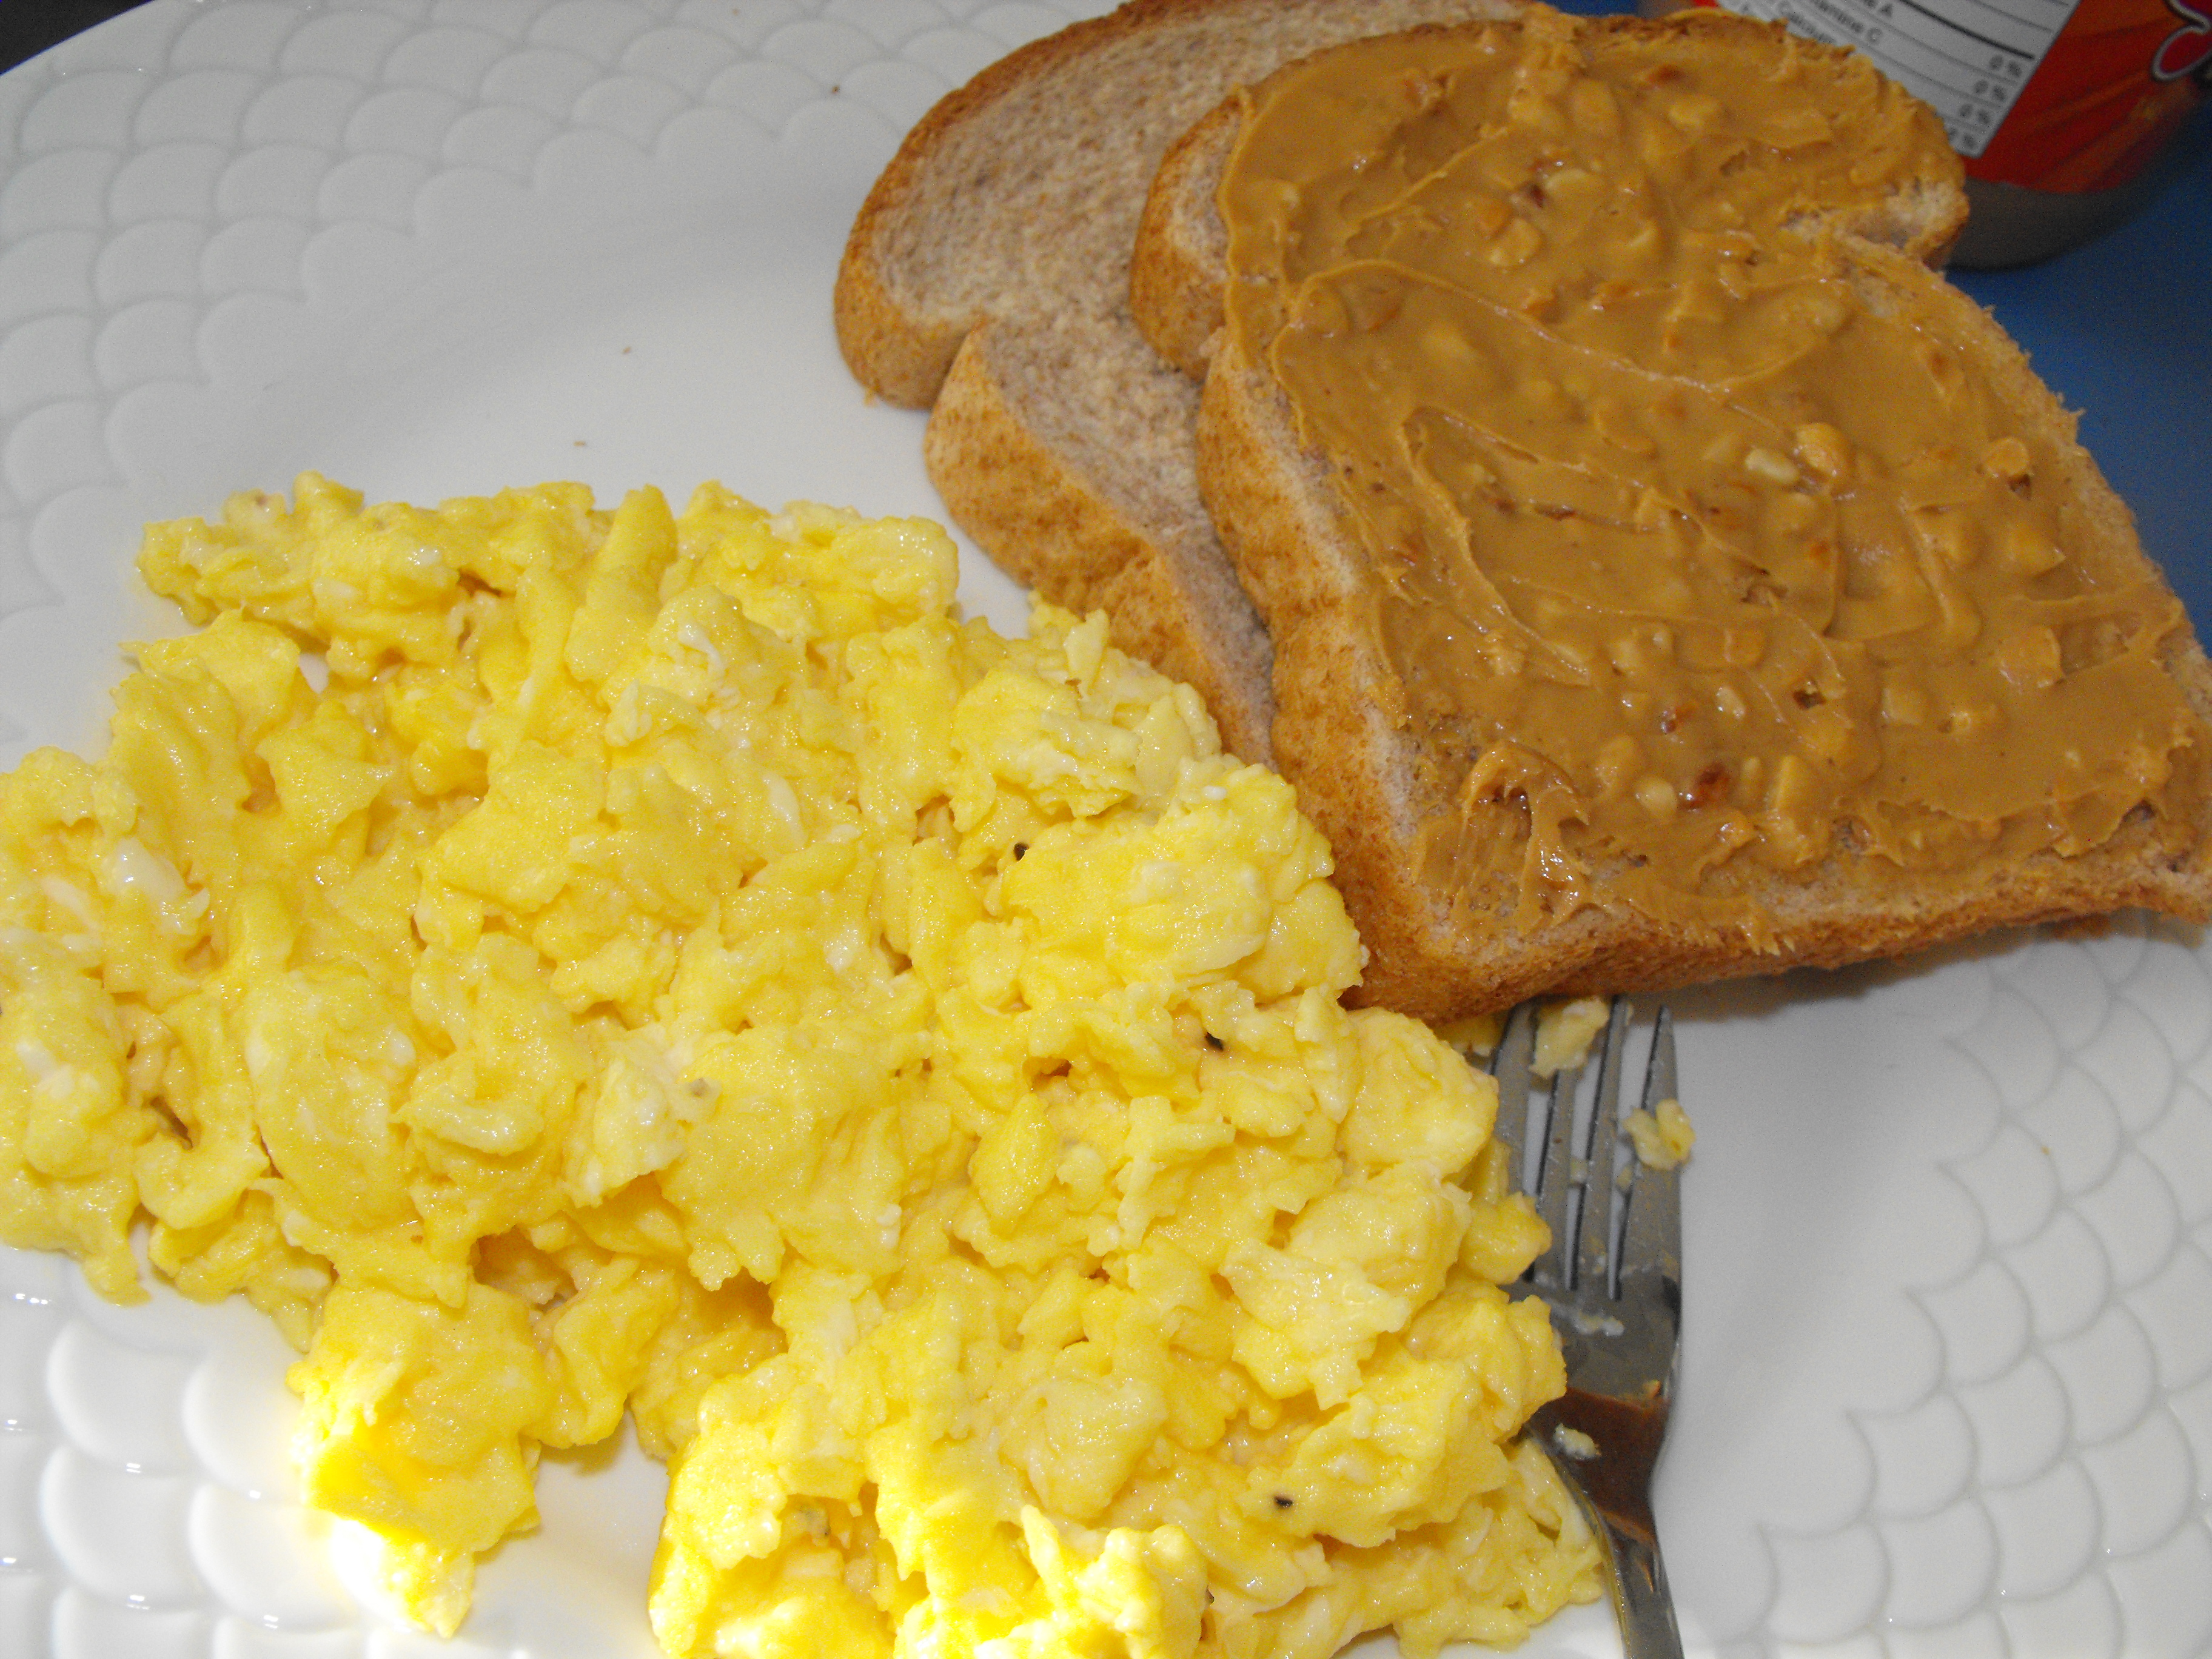 https://foodloader.net/cutie_2010-03-09_crunchy_peanut_butter_sandwich_and_scrambled_eggs.jpg